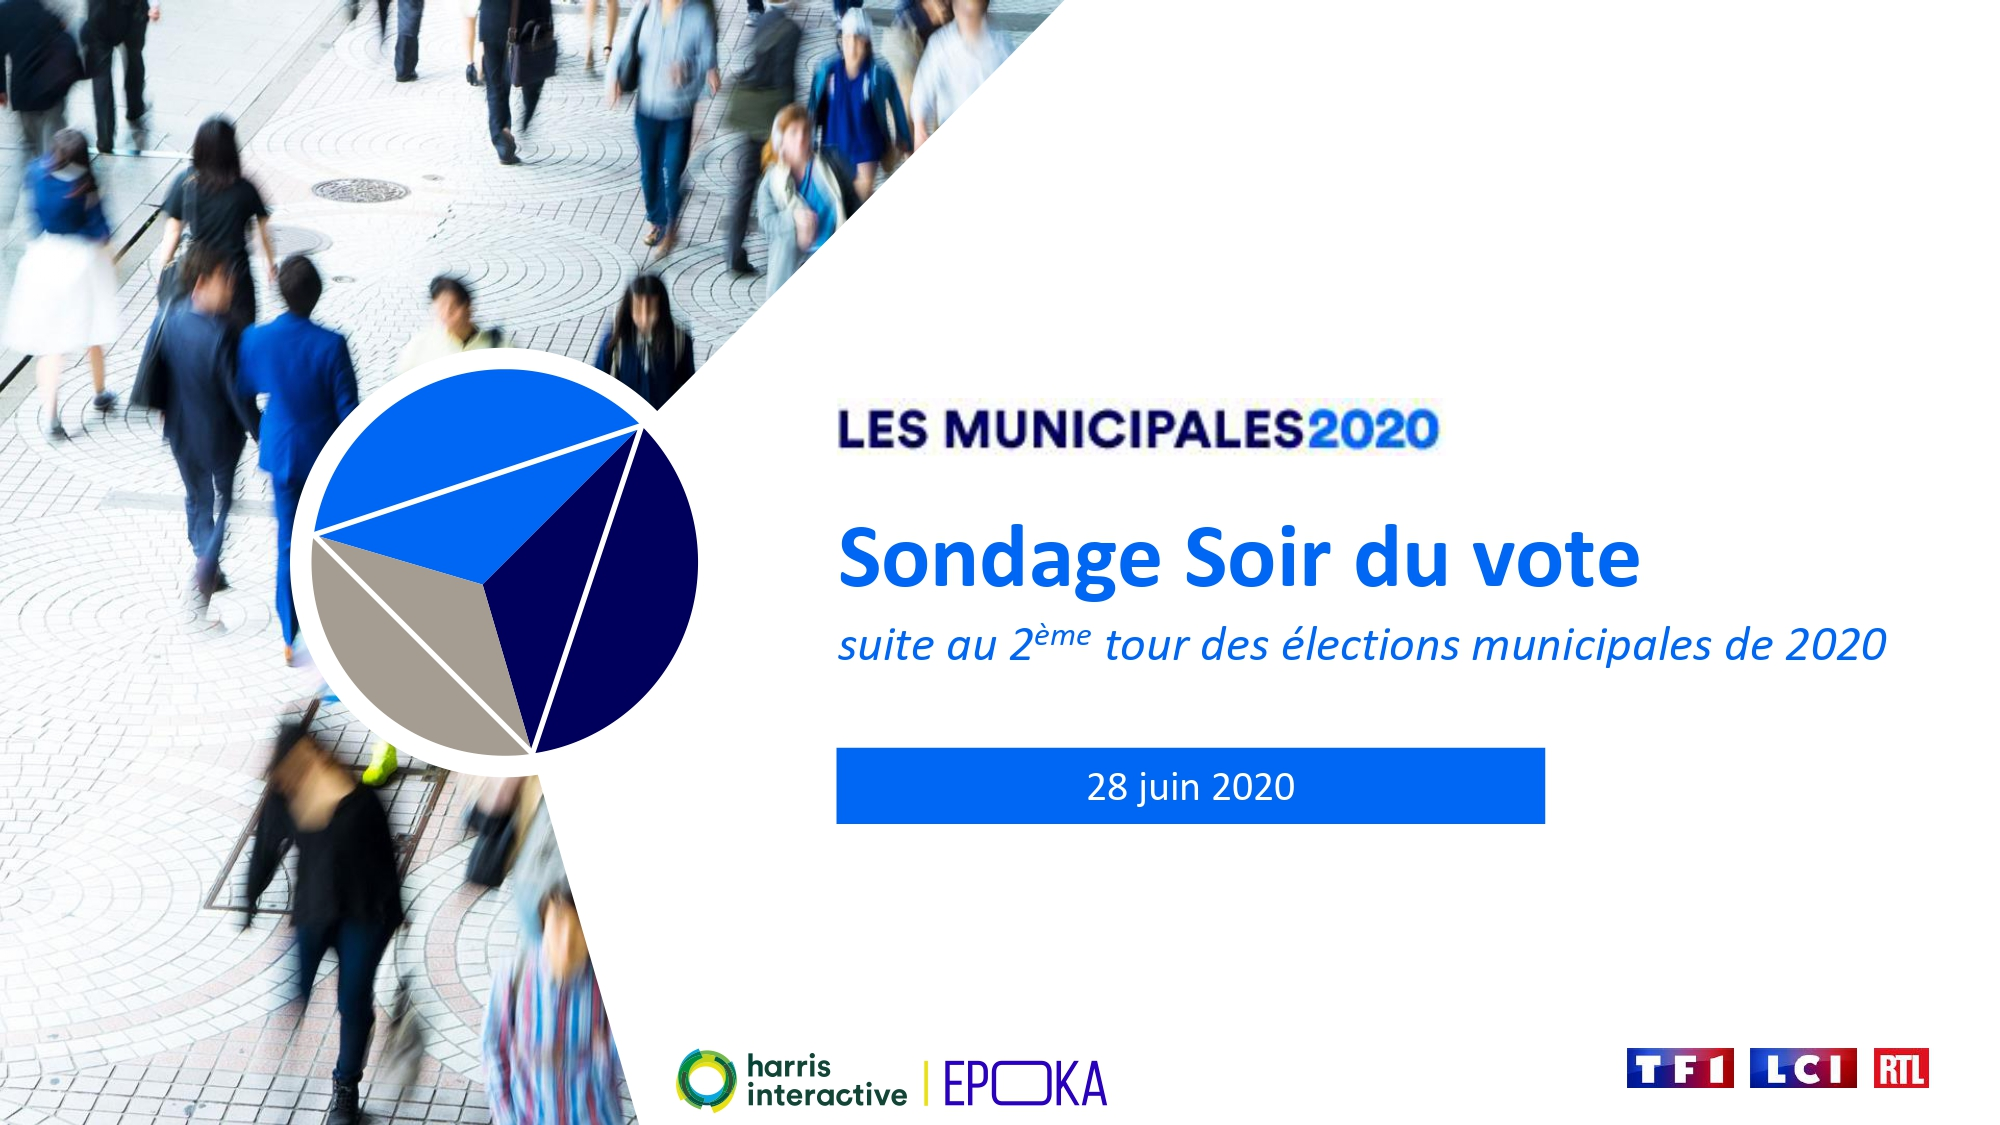 Municipales 2020 – Second Tour : sondage Soir du Vote image